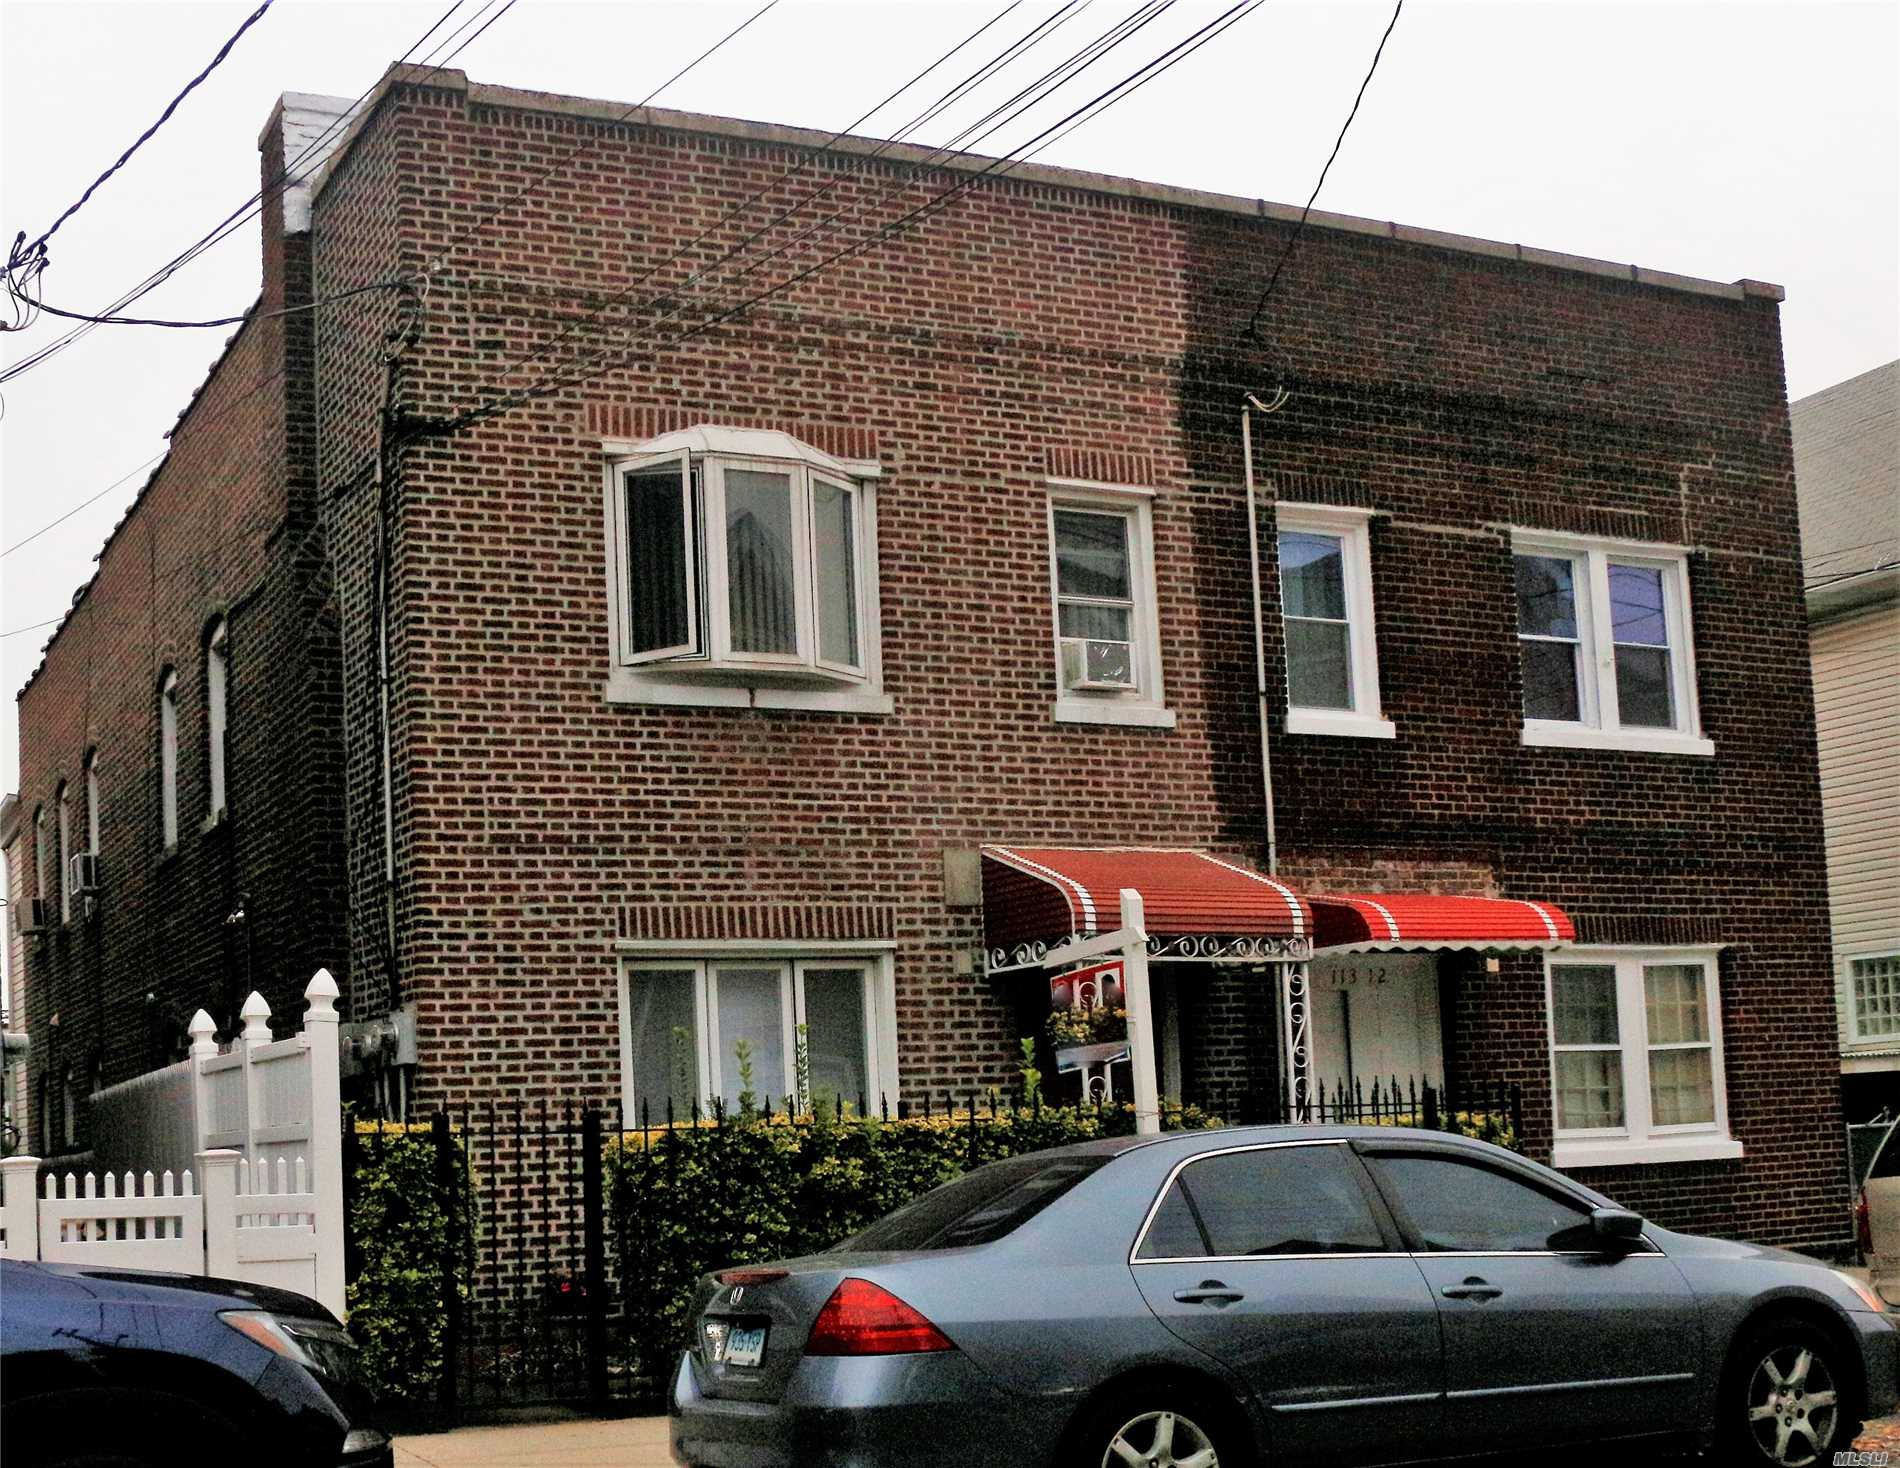 Semi Detached Brick 2 Family With 19X54 Building Size, 1Fl & 2nd Fl With 4 Beds, Eat In Kitchen And Full Bath Plus Sep. Ent. Finished Basement, Parking Space At The Back Of The House, Low Real Estate Taxes, Good For Investment Or Live In. Ez To All, Buses-Q65, Q25, Q20B